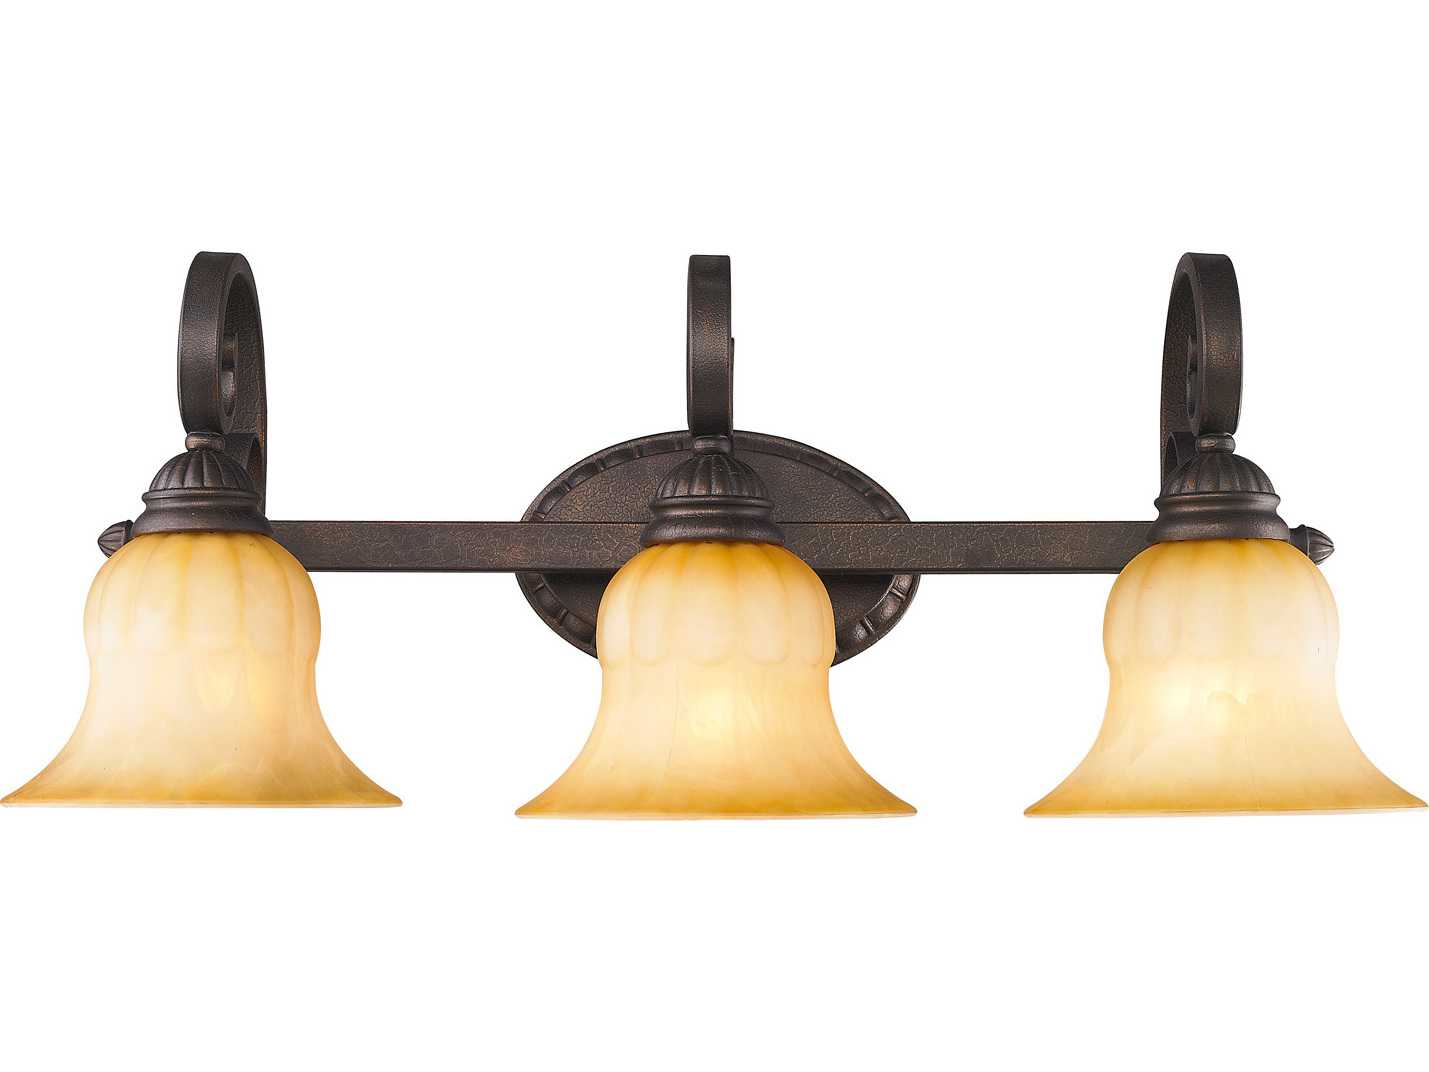 Golden Lighting Mayfair Leather Crackle Three-Light Vanity Light with Creme Brulee Glass ...